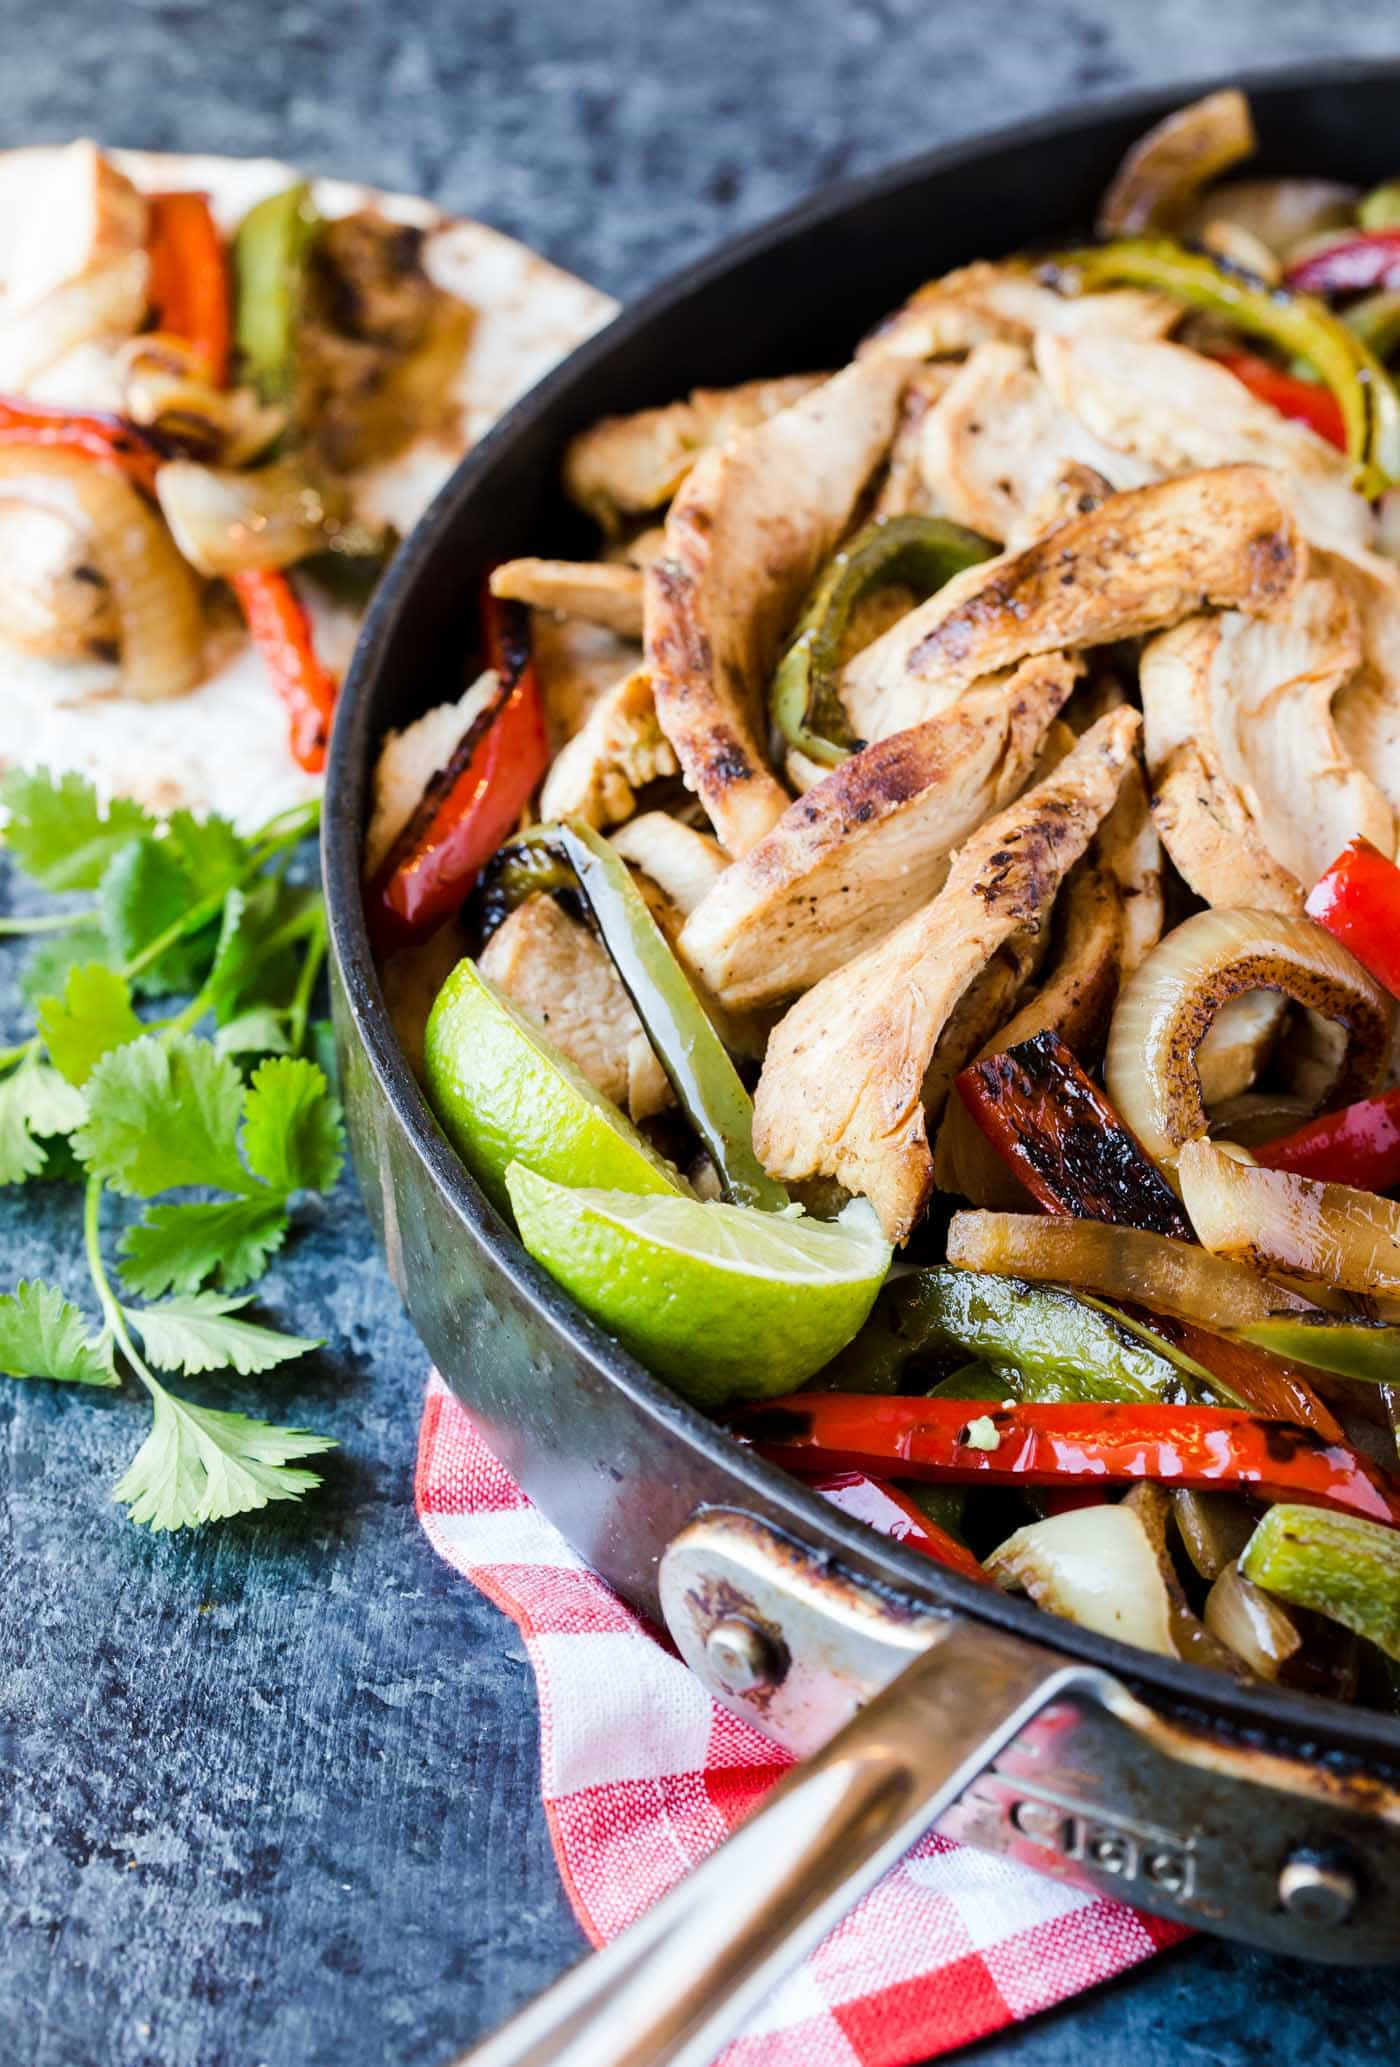 Double the recipe and turn your next party into a fiesta with these Tequila Lime Chicken Fajitas!